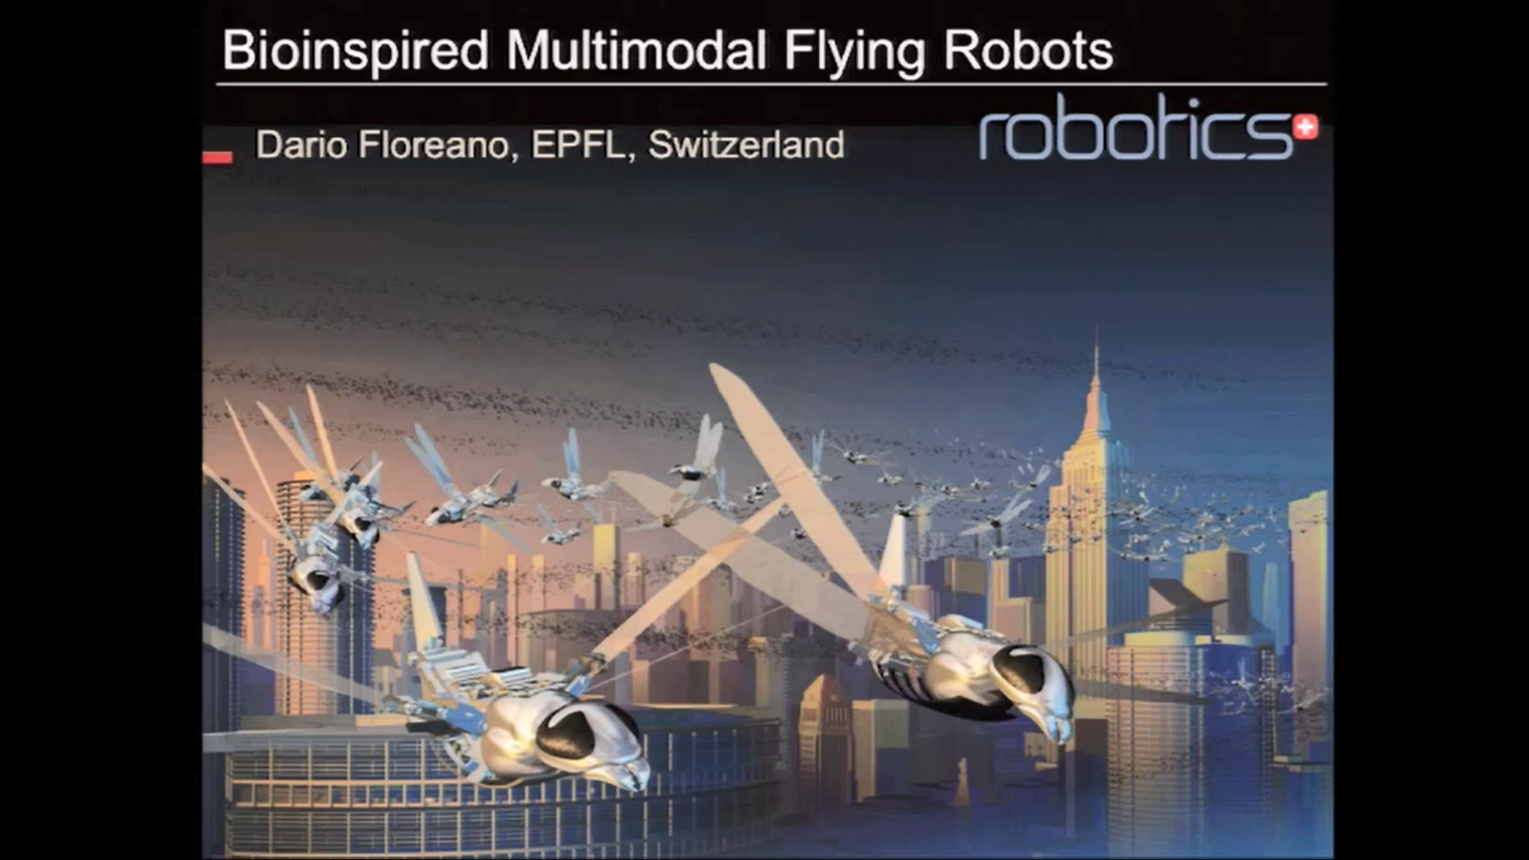 Bioinspired Multimodal Flying Robots